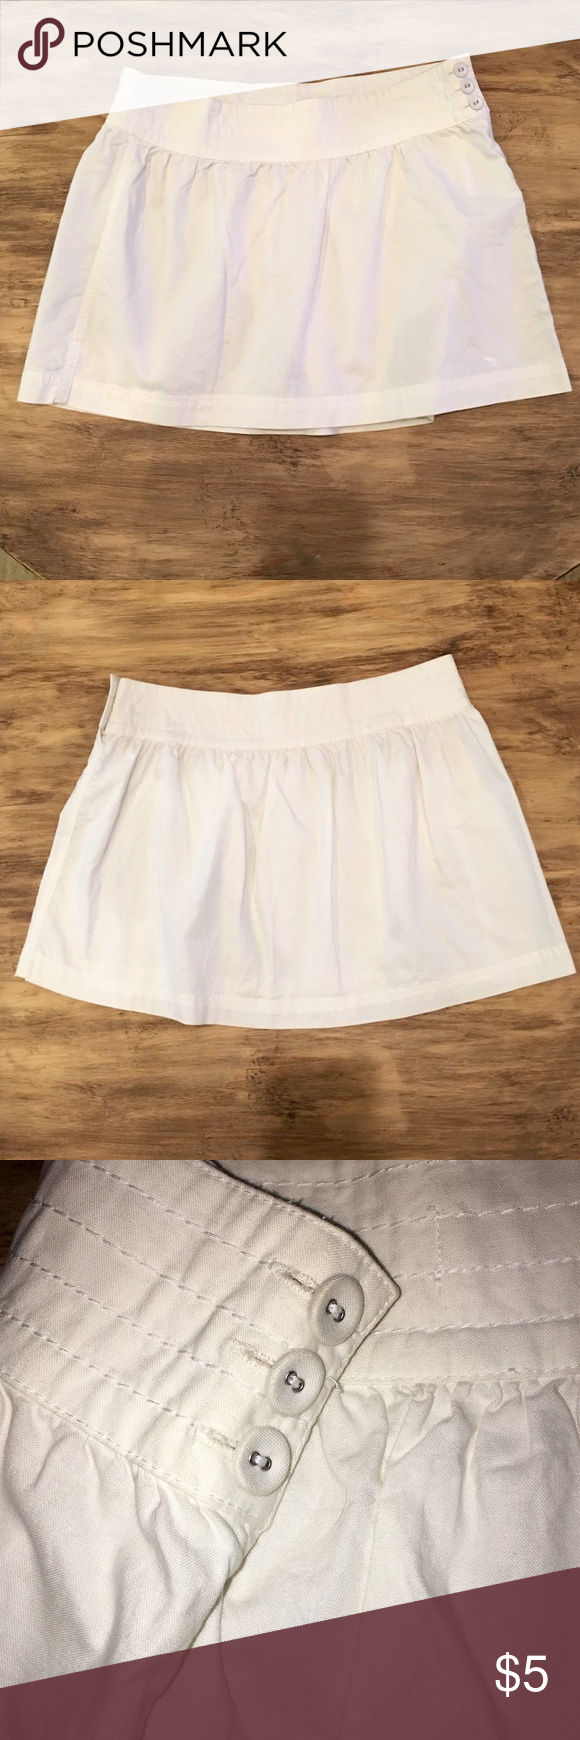 White Miniskirt White skirt from Abercrombie and Fitch. Size two. 100% cotton and washer and dryer safe. Abercrombie & Fitch Skirts Mini